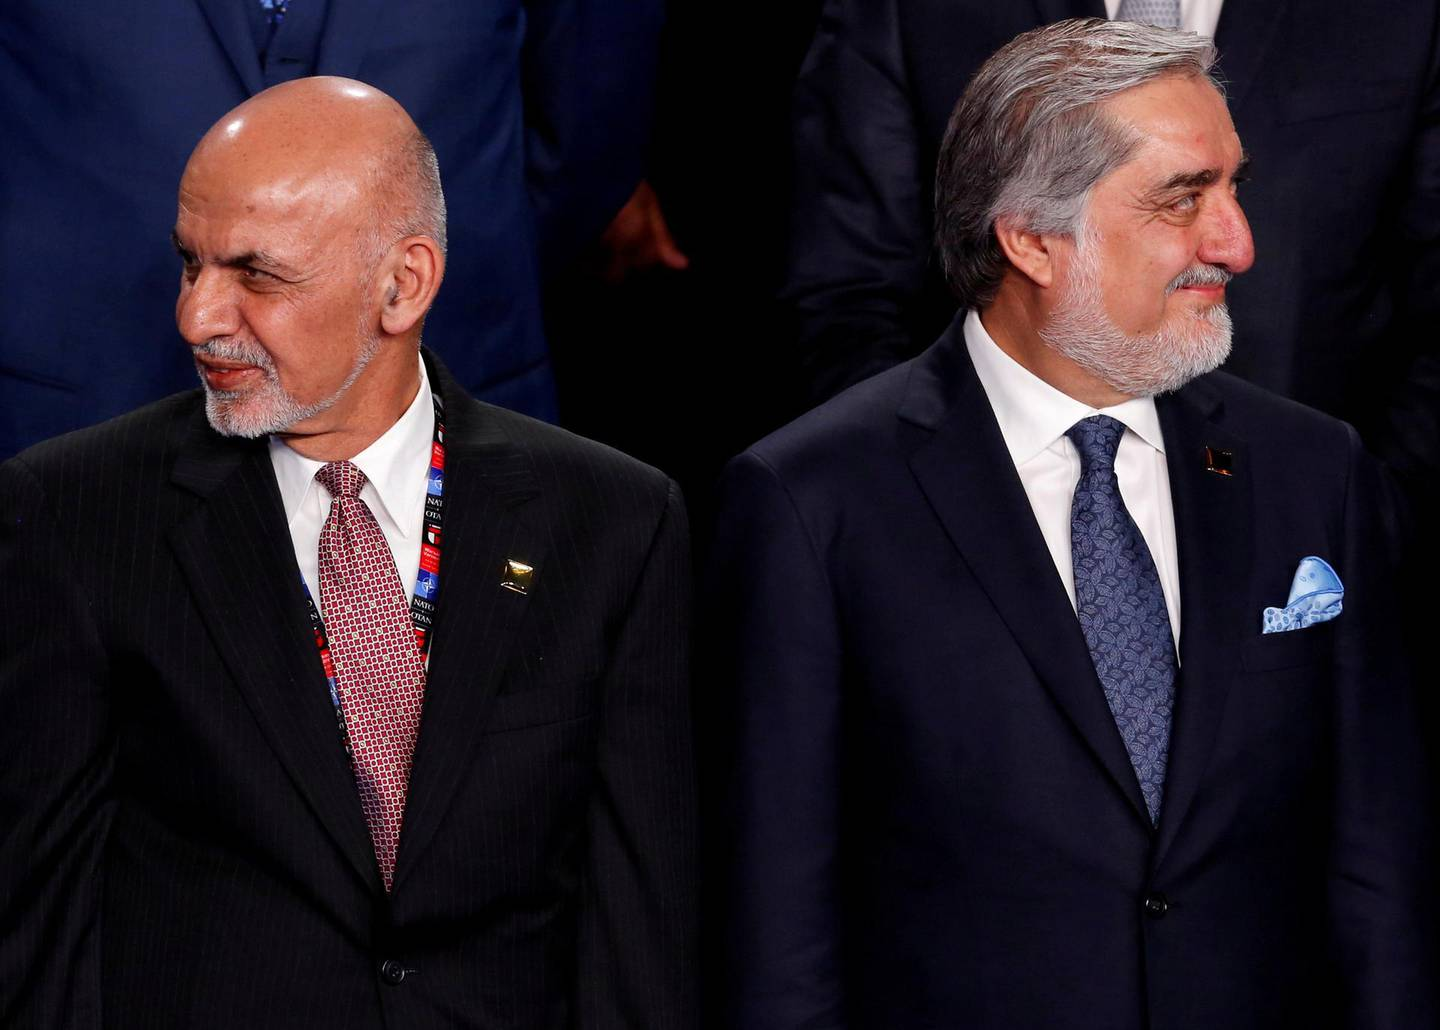 FILE PHOTO: Afghanistan's President Ashraf Ghani (L) and Afghanistan's Chief Executive Abdullah Abdullah (R) participate in a family photo at the NATO Summit in Warsaw, Poland July 8, 2016. REUTERS/Jonathan Ernst/File Photo